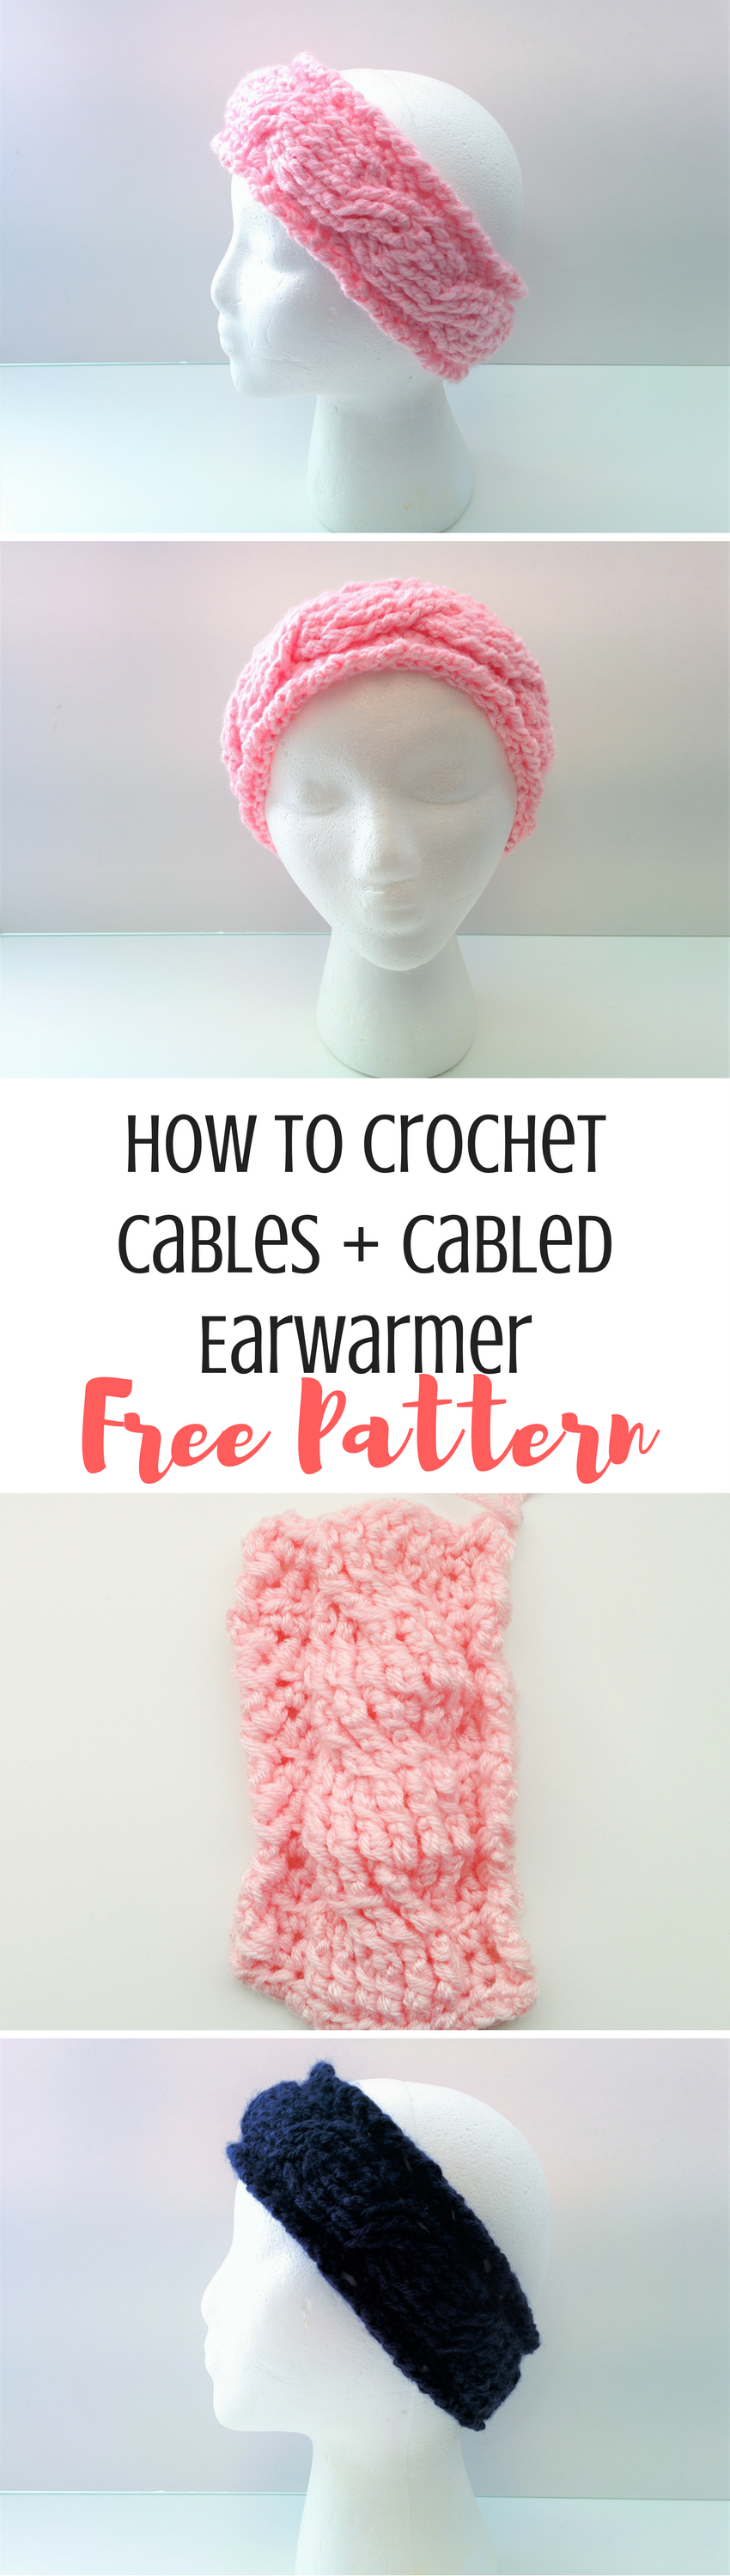 Crochet 101: How to Crochet Cables + Earwarmer Pattern | Accesorios ...